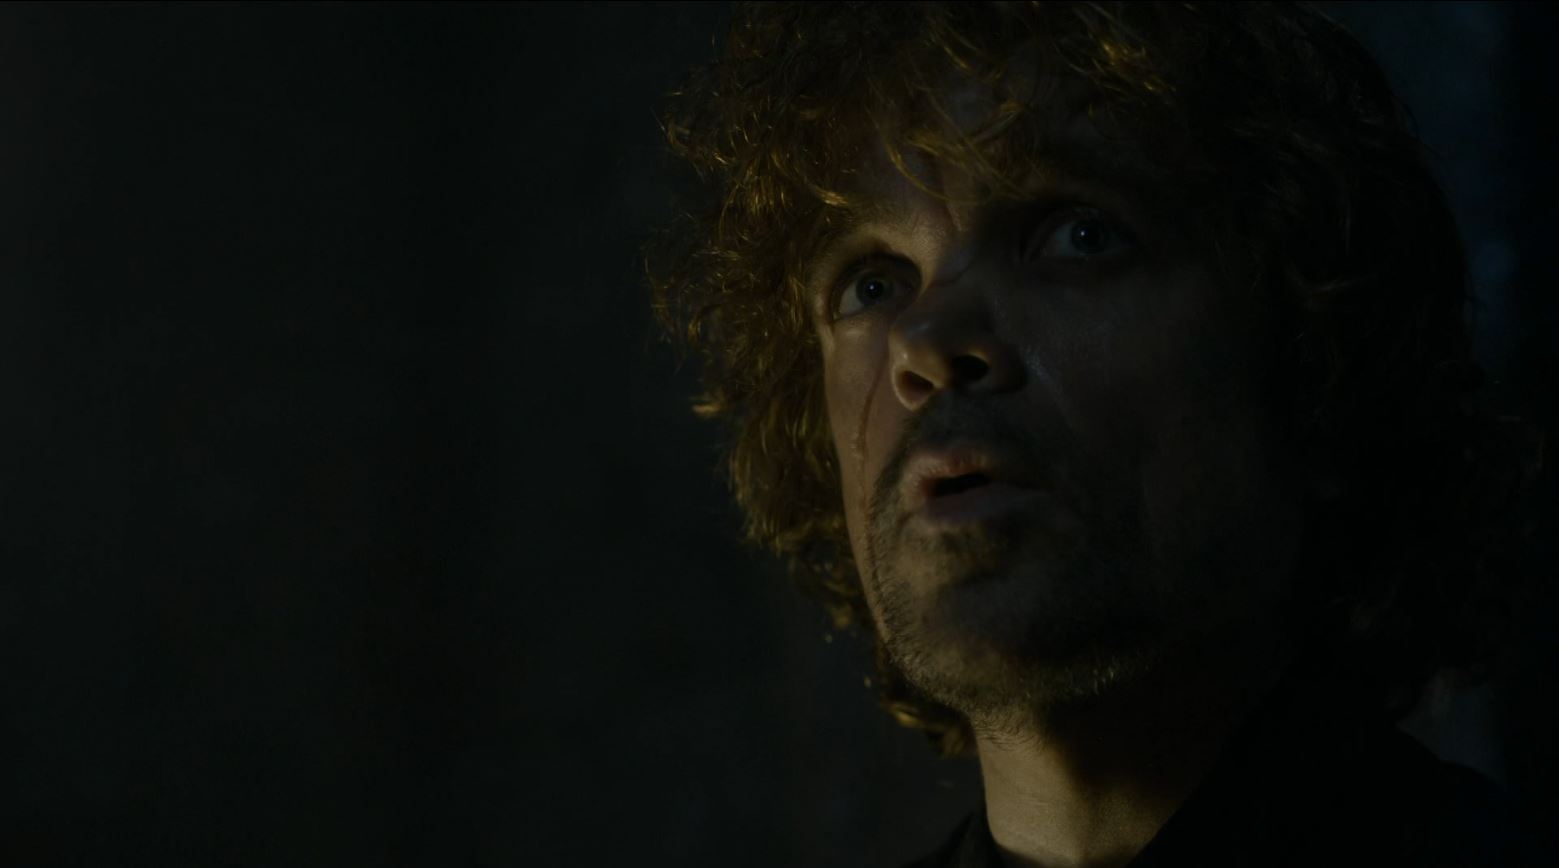 Game of Thrones 'The Mountain and The Viper' Review http://scifiempire.net Game Of Thrones - Tyrion (Peter Dinklage) talks about Orson Lannister